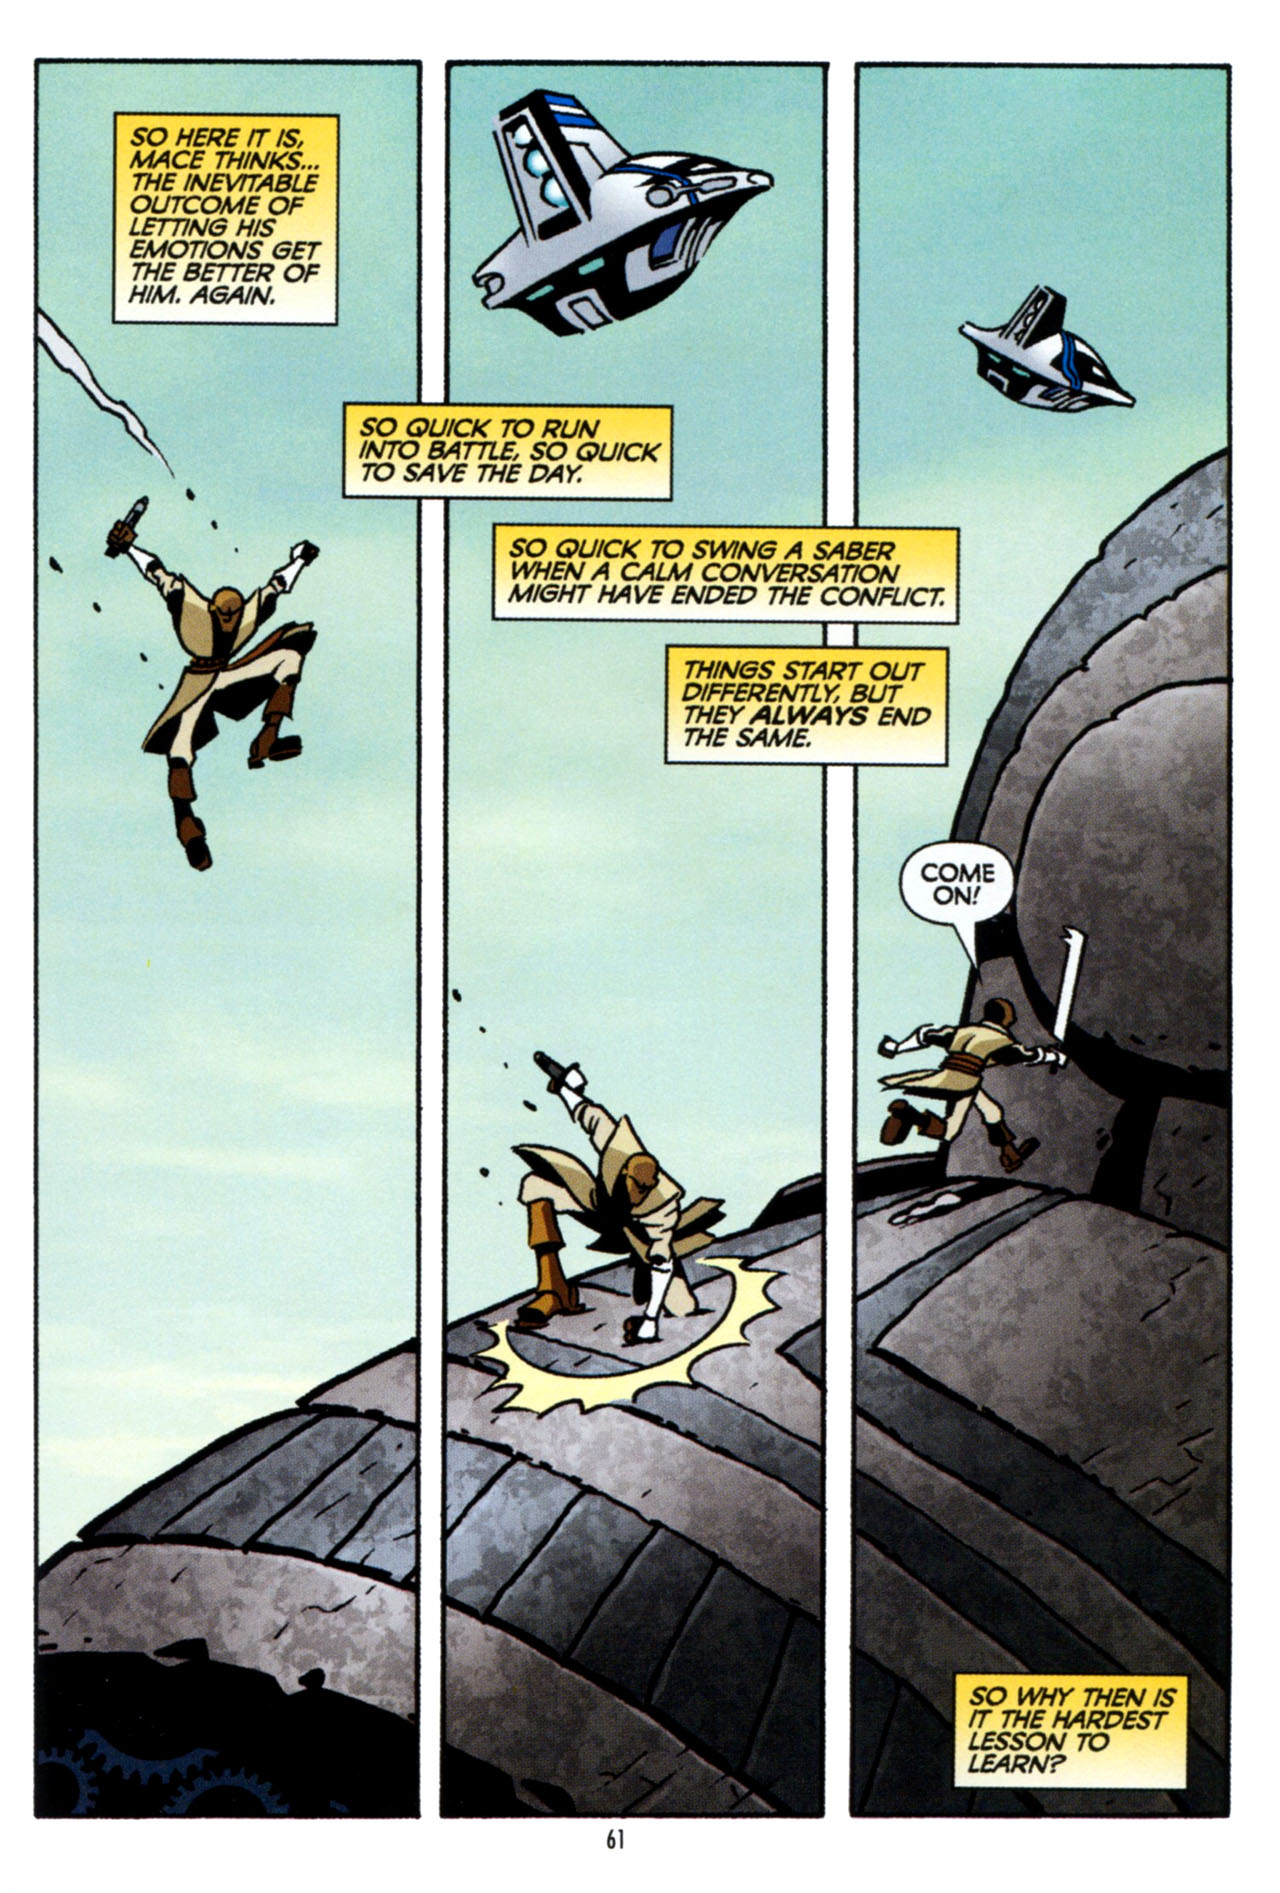 Read online Star Wars: The Clone Wars - The Colossus of Destiny comic -  Issue # Full - 61